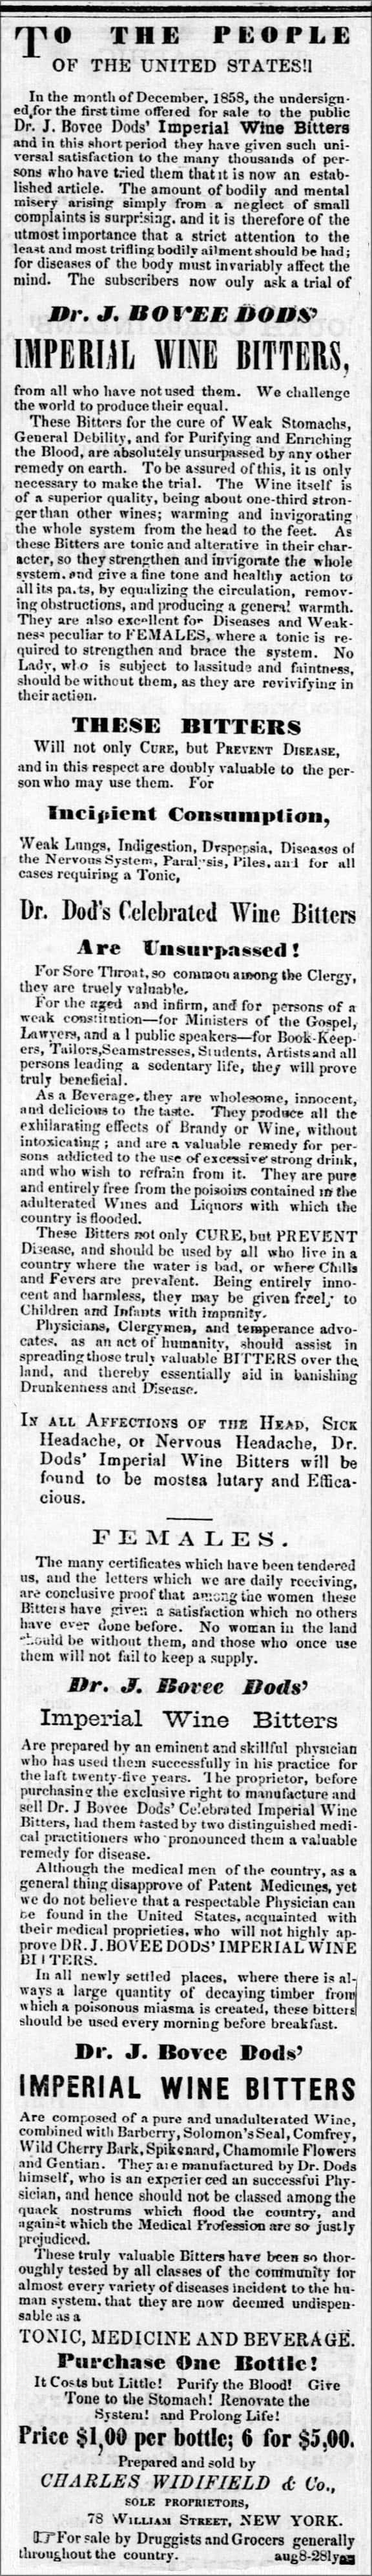 BoveeDods_The_Plymouth_Weekly_Democrat_Thu__Sep_26__1861_-2